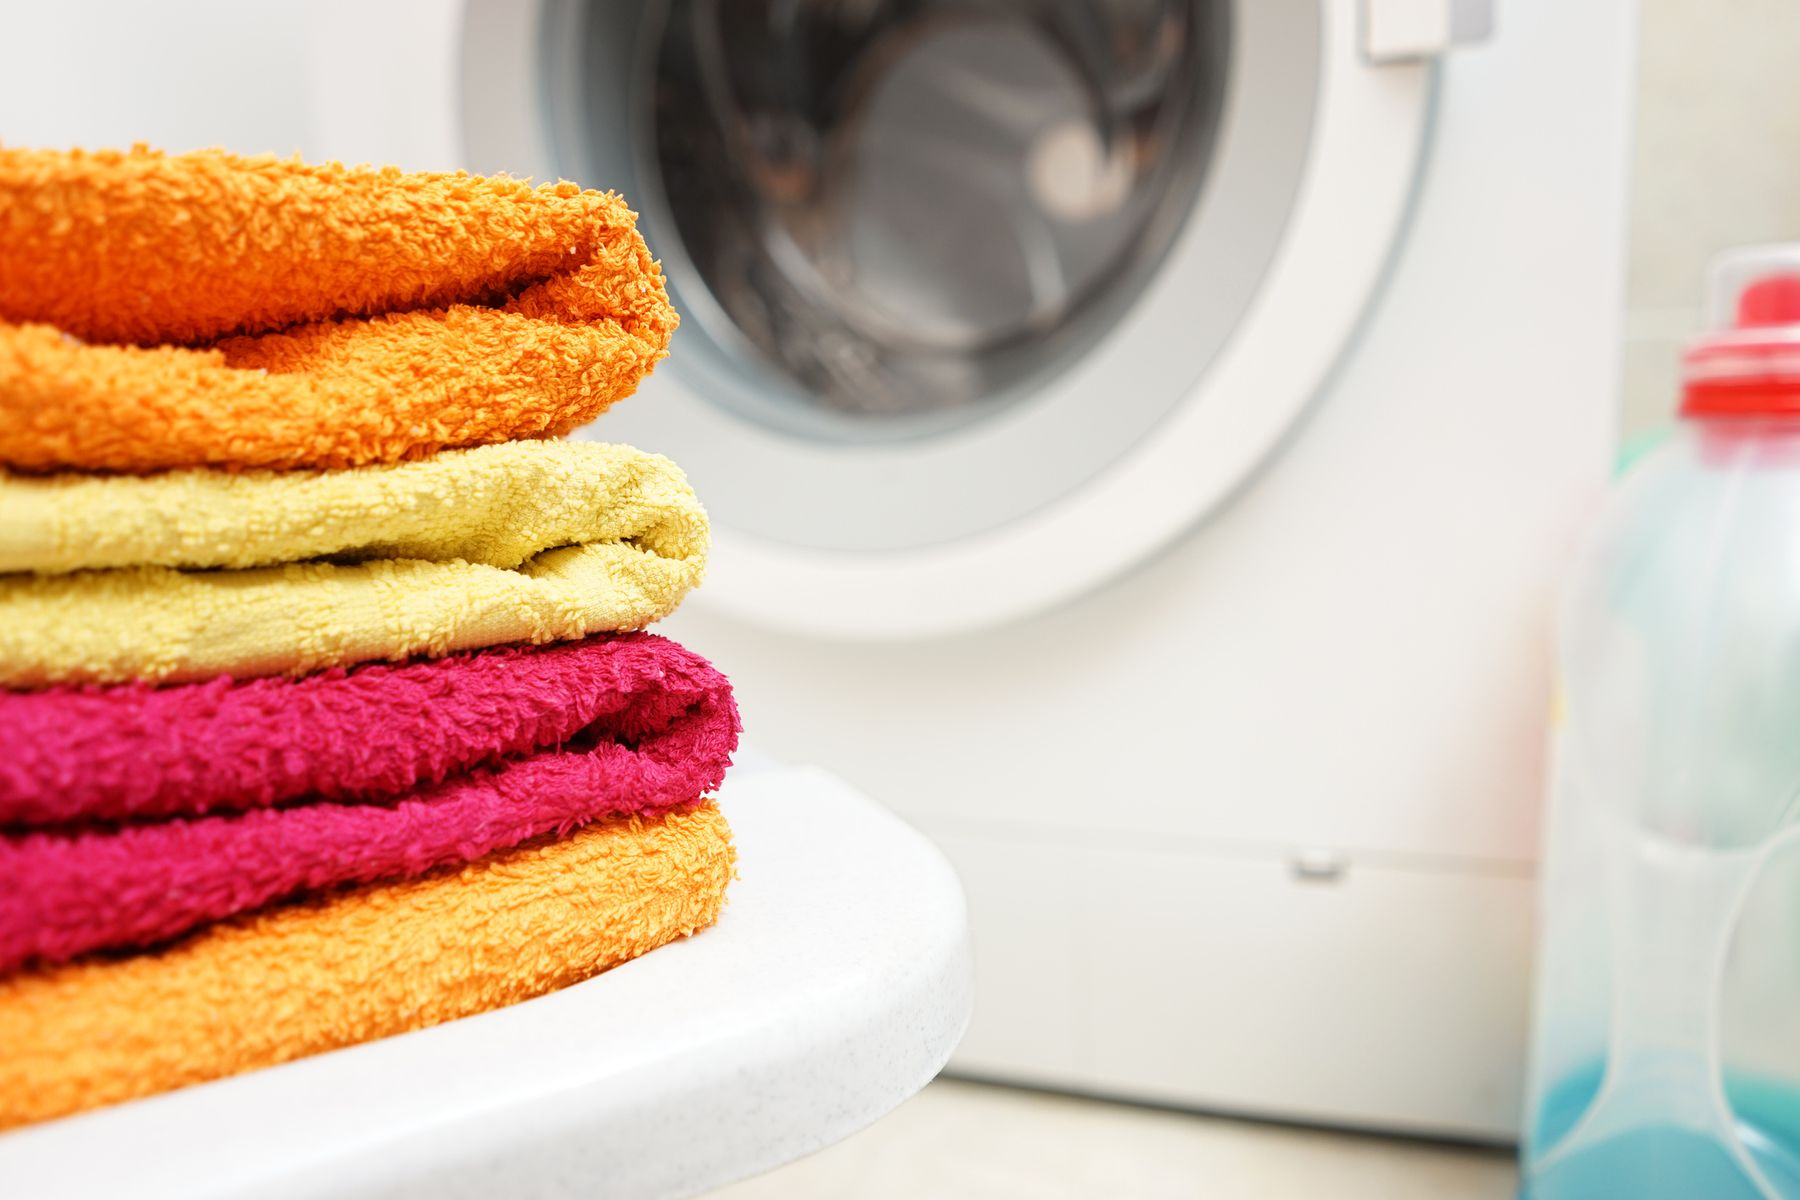 A pile of orange, yellow, and red towels in front of a washing machine